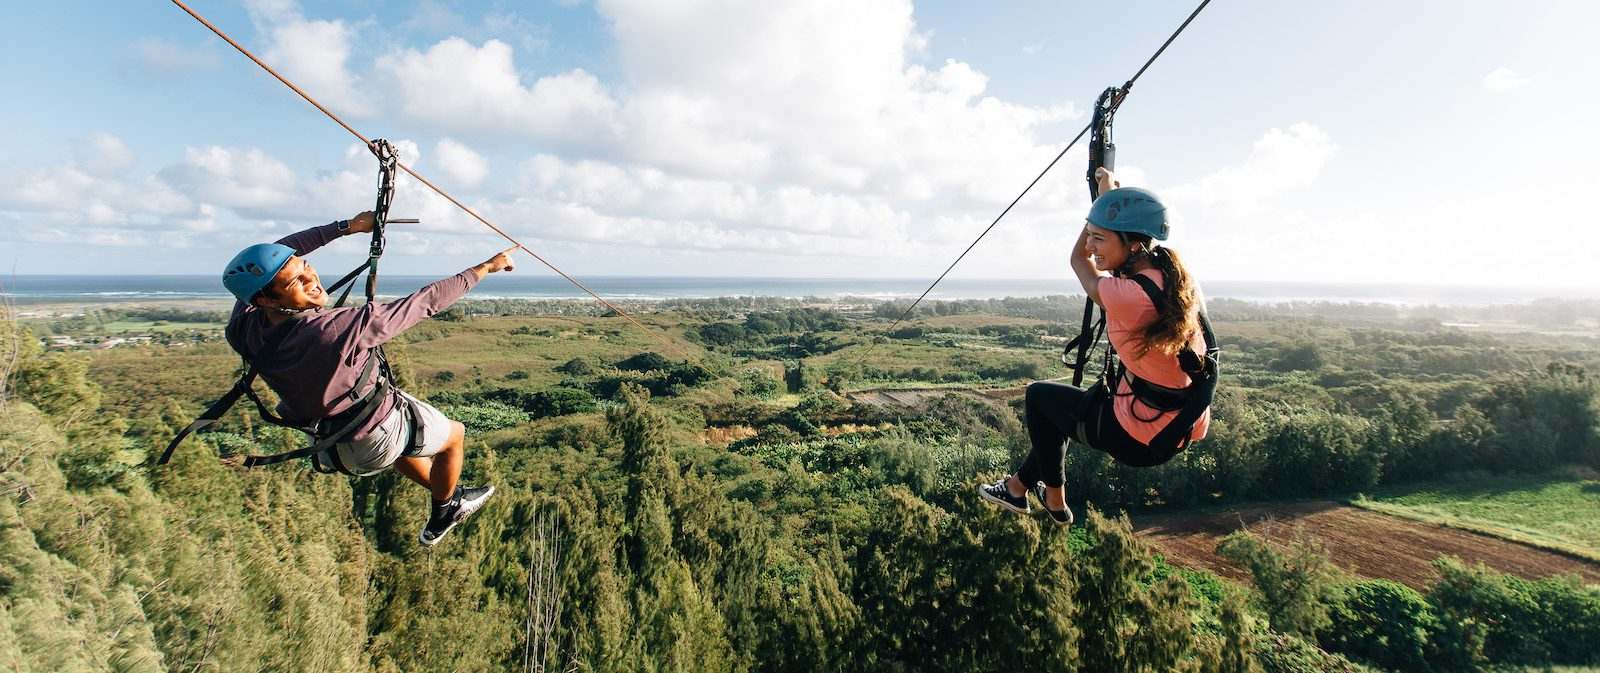 4 Things Visitors Love When They Zipline in Hawaii at CLIMB Works